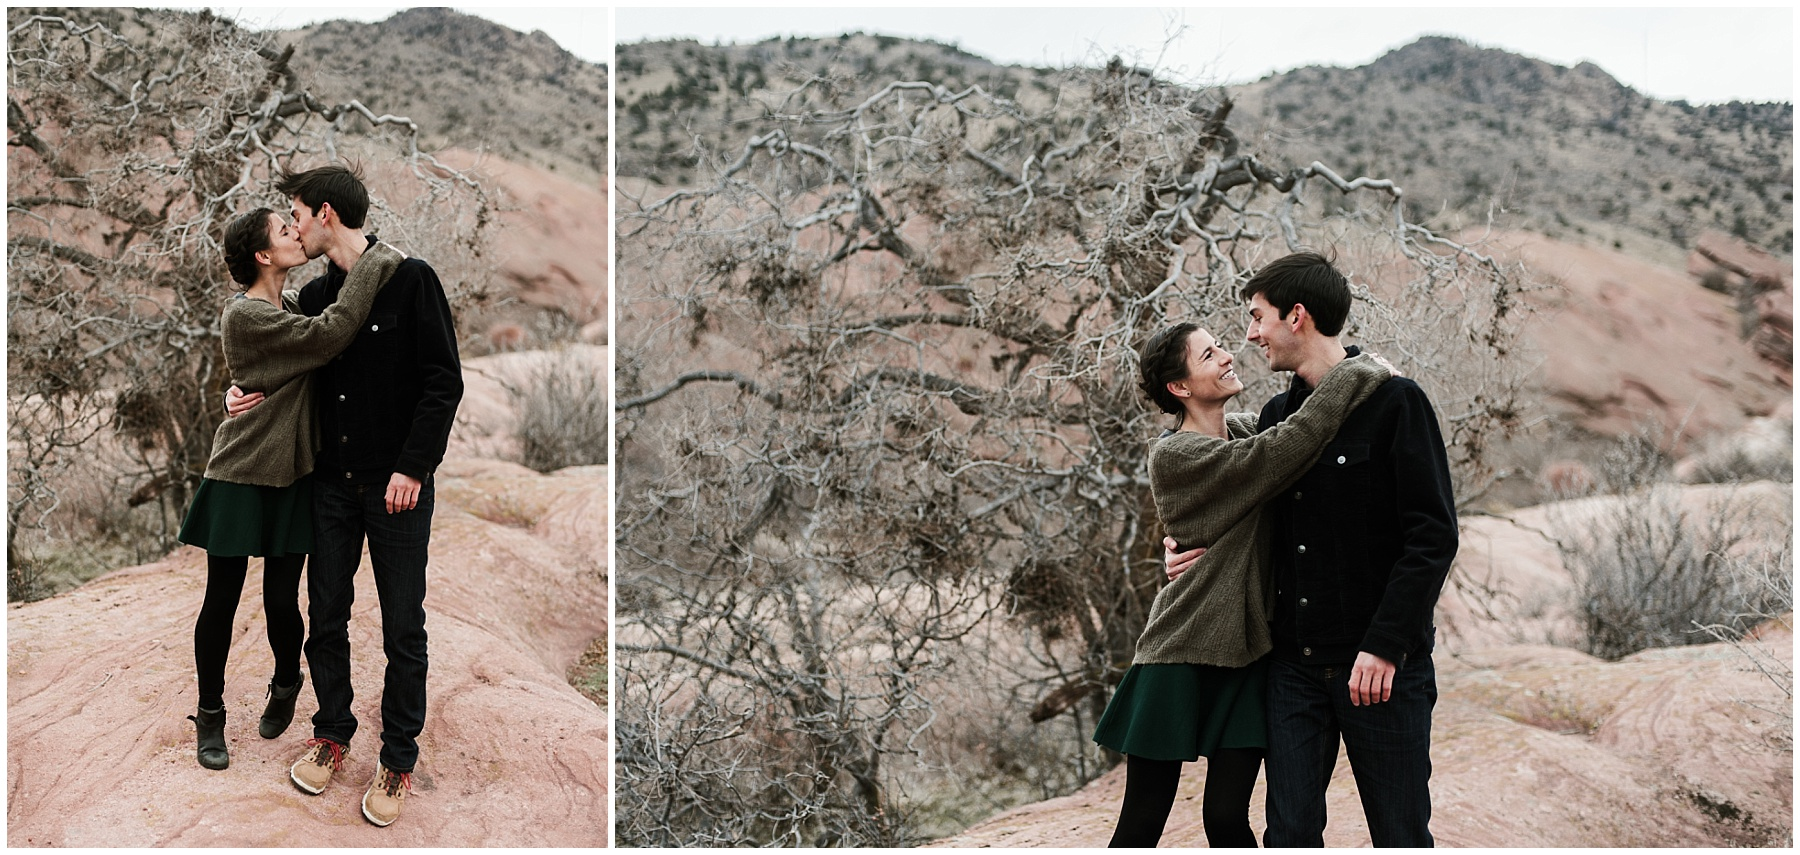 Katesalleyphotography-55_engagement shoot at Red Rocks.jpg